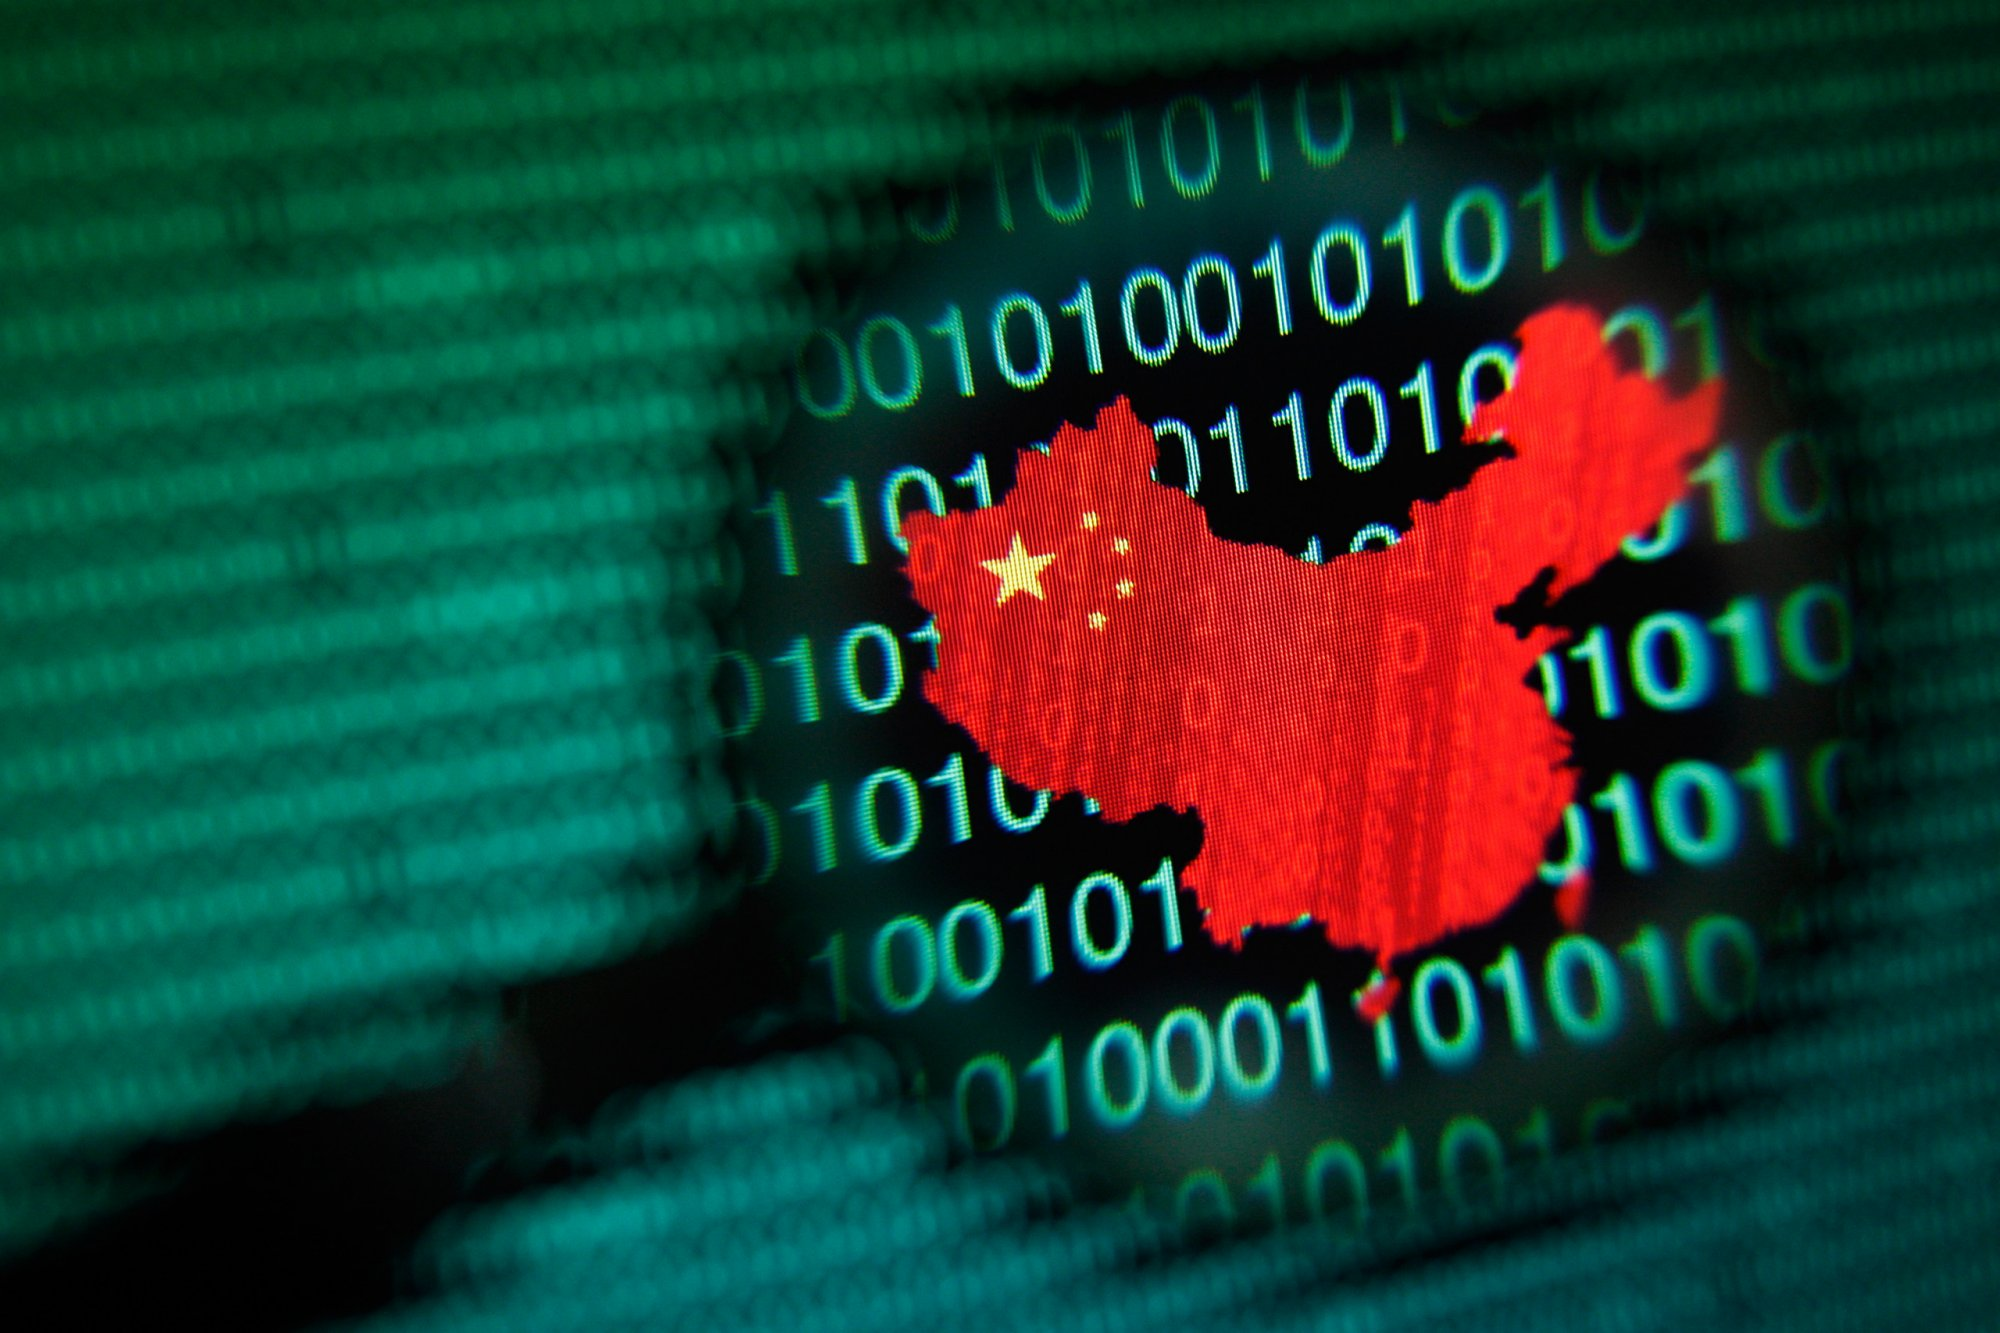 Image: China hacking and penetration of critical U.S. infrastructure systems worse than previous thought